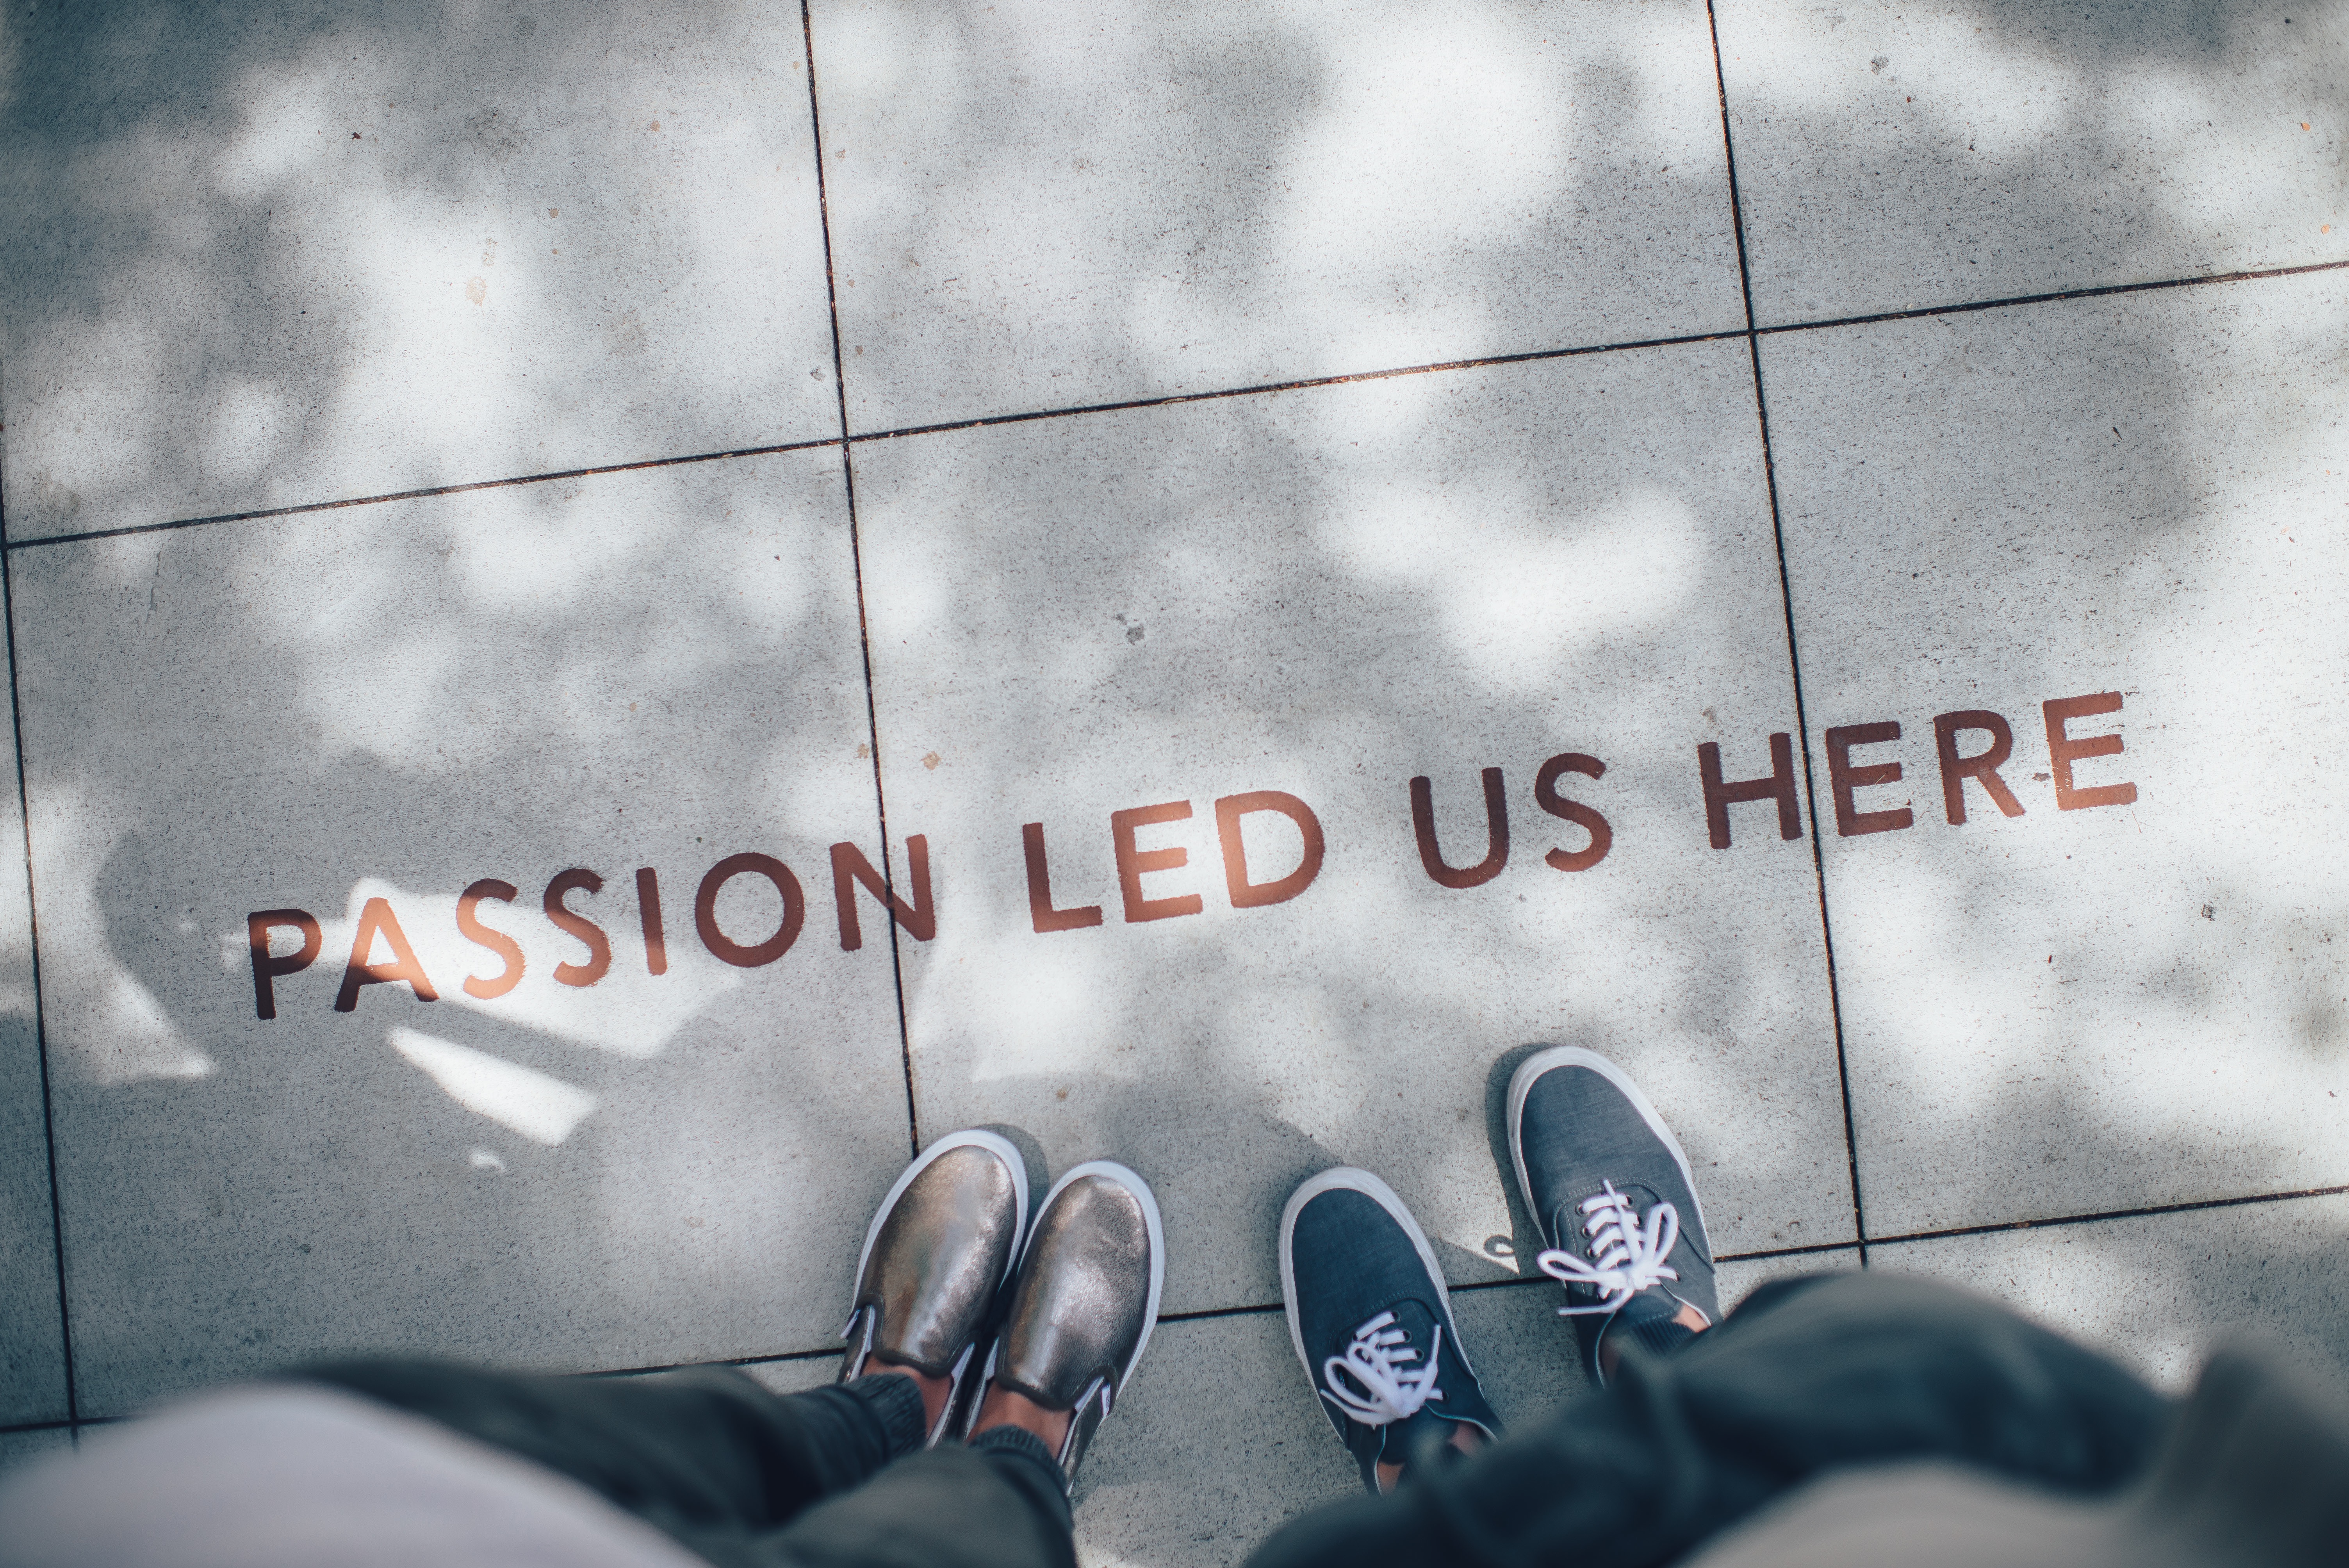 """Sidewalk says """"Passion led us here"""" with two peoples feet"""